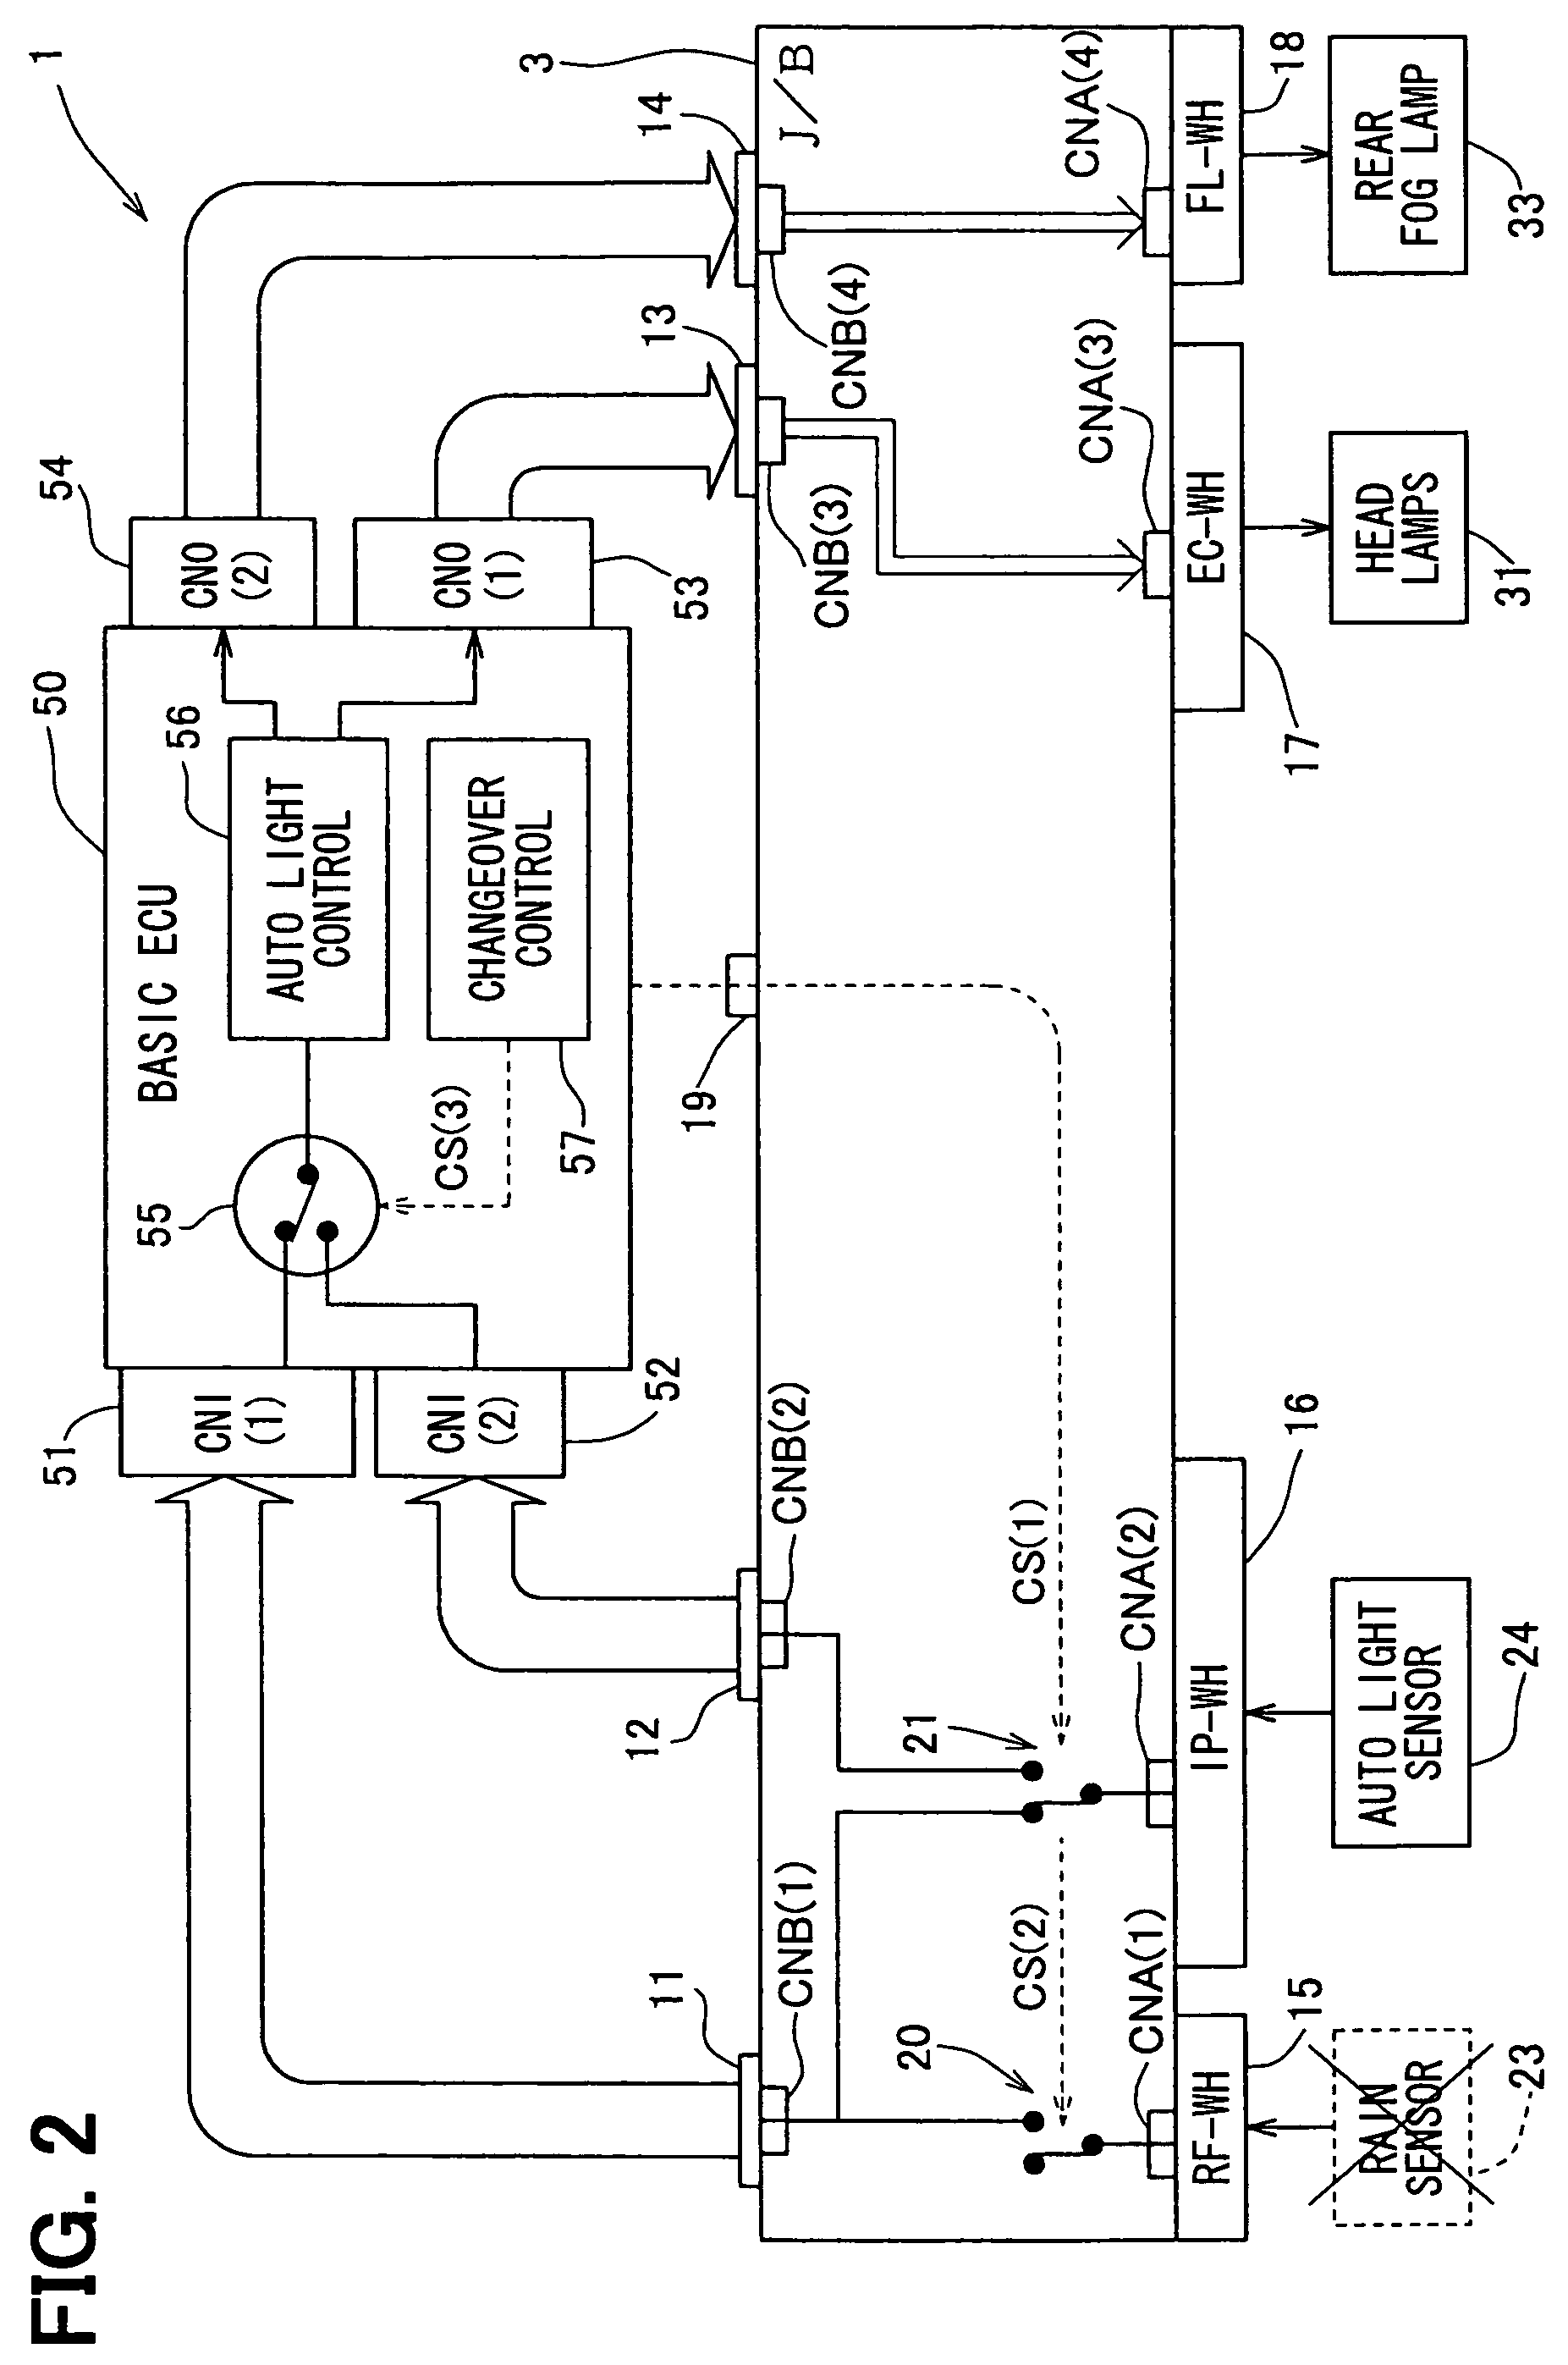 Rapid Start Wiring Diagram besides T5ho Ballast Wiring Diagram also F32t8 Ballast Wiring Diagram additionally T5 Electronic Ballast Wire Diagram moreover 2g11 Wiring Diagram. on programmed start ballast wiring diagram